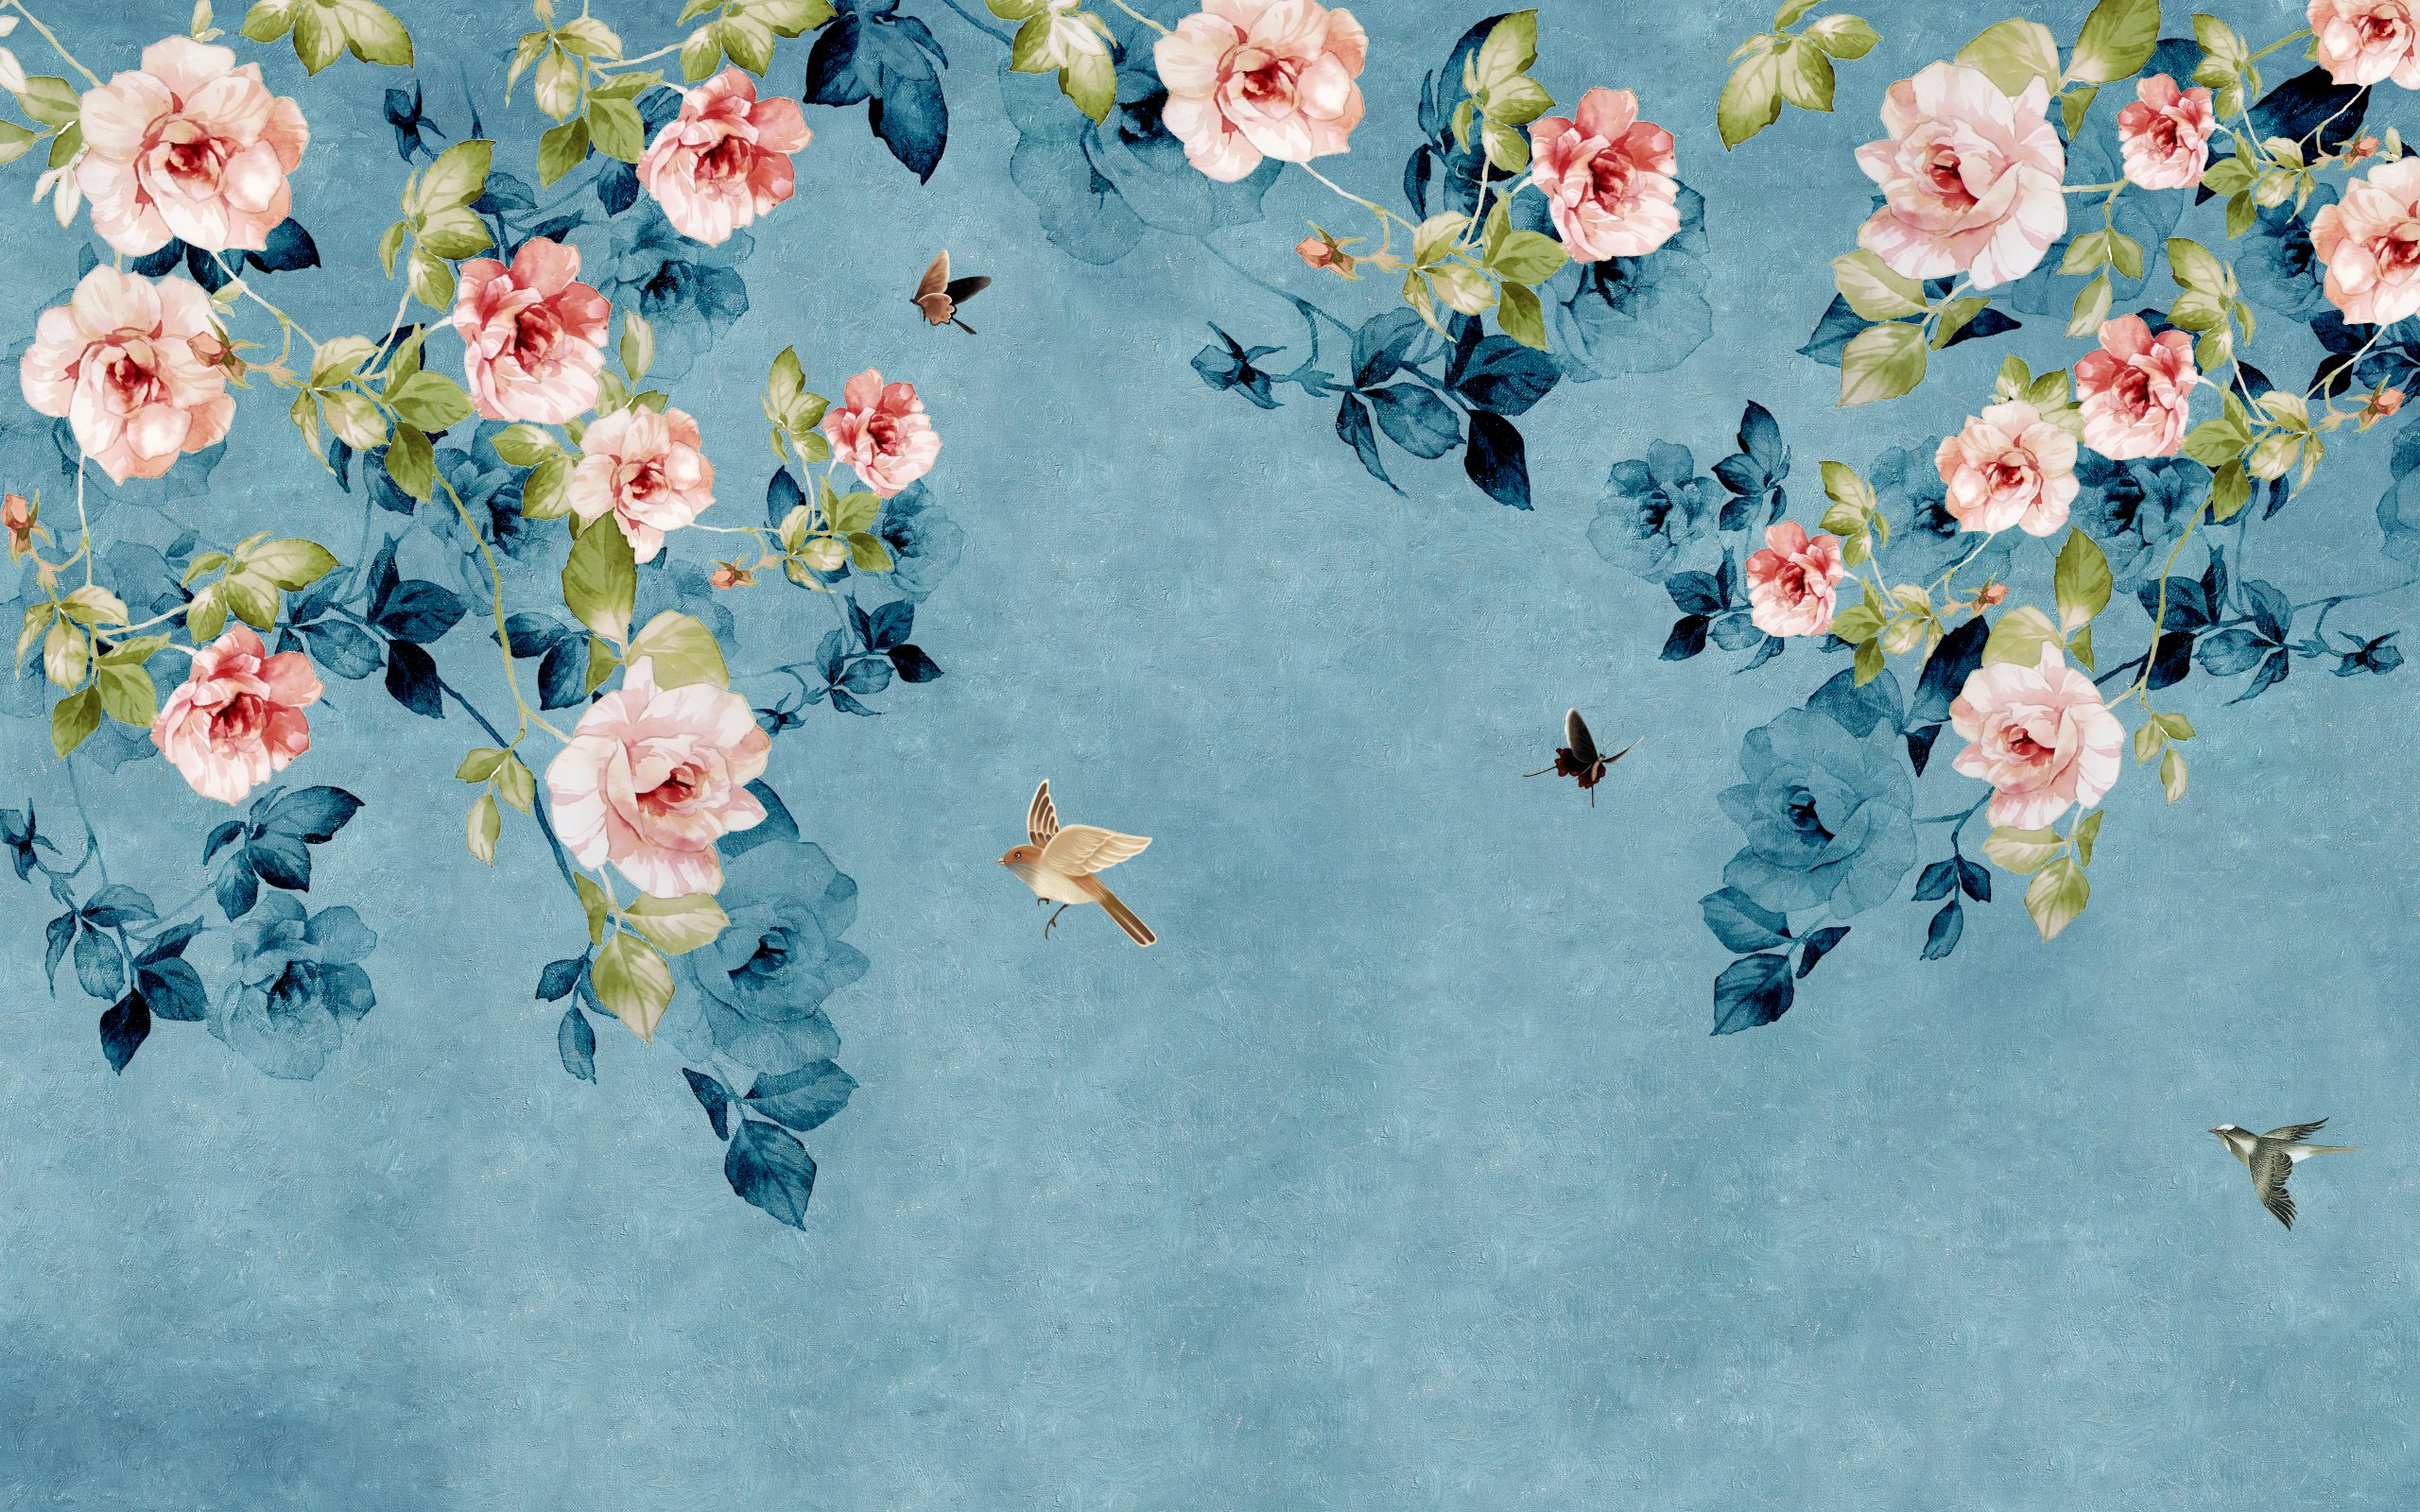 Drawn pink roses on blue-green textured background, flying birds and butterflies